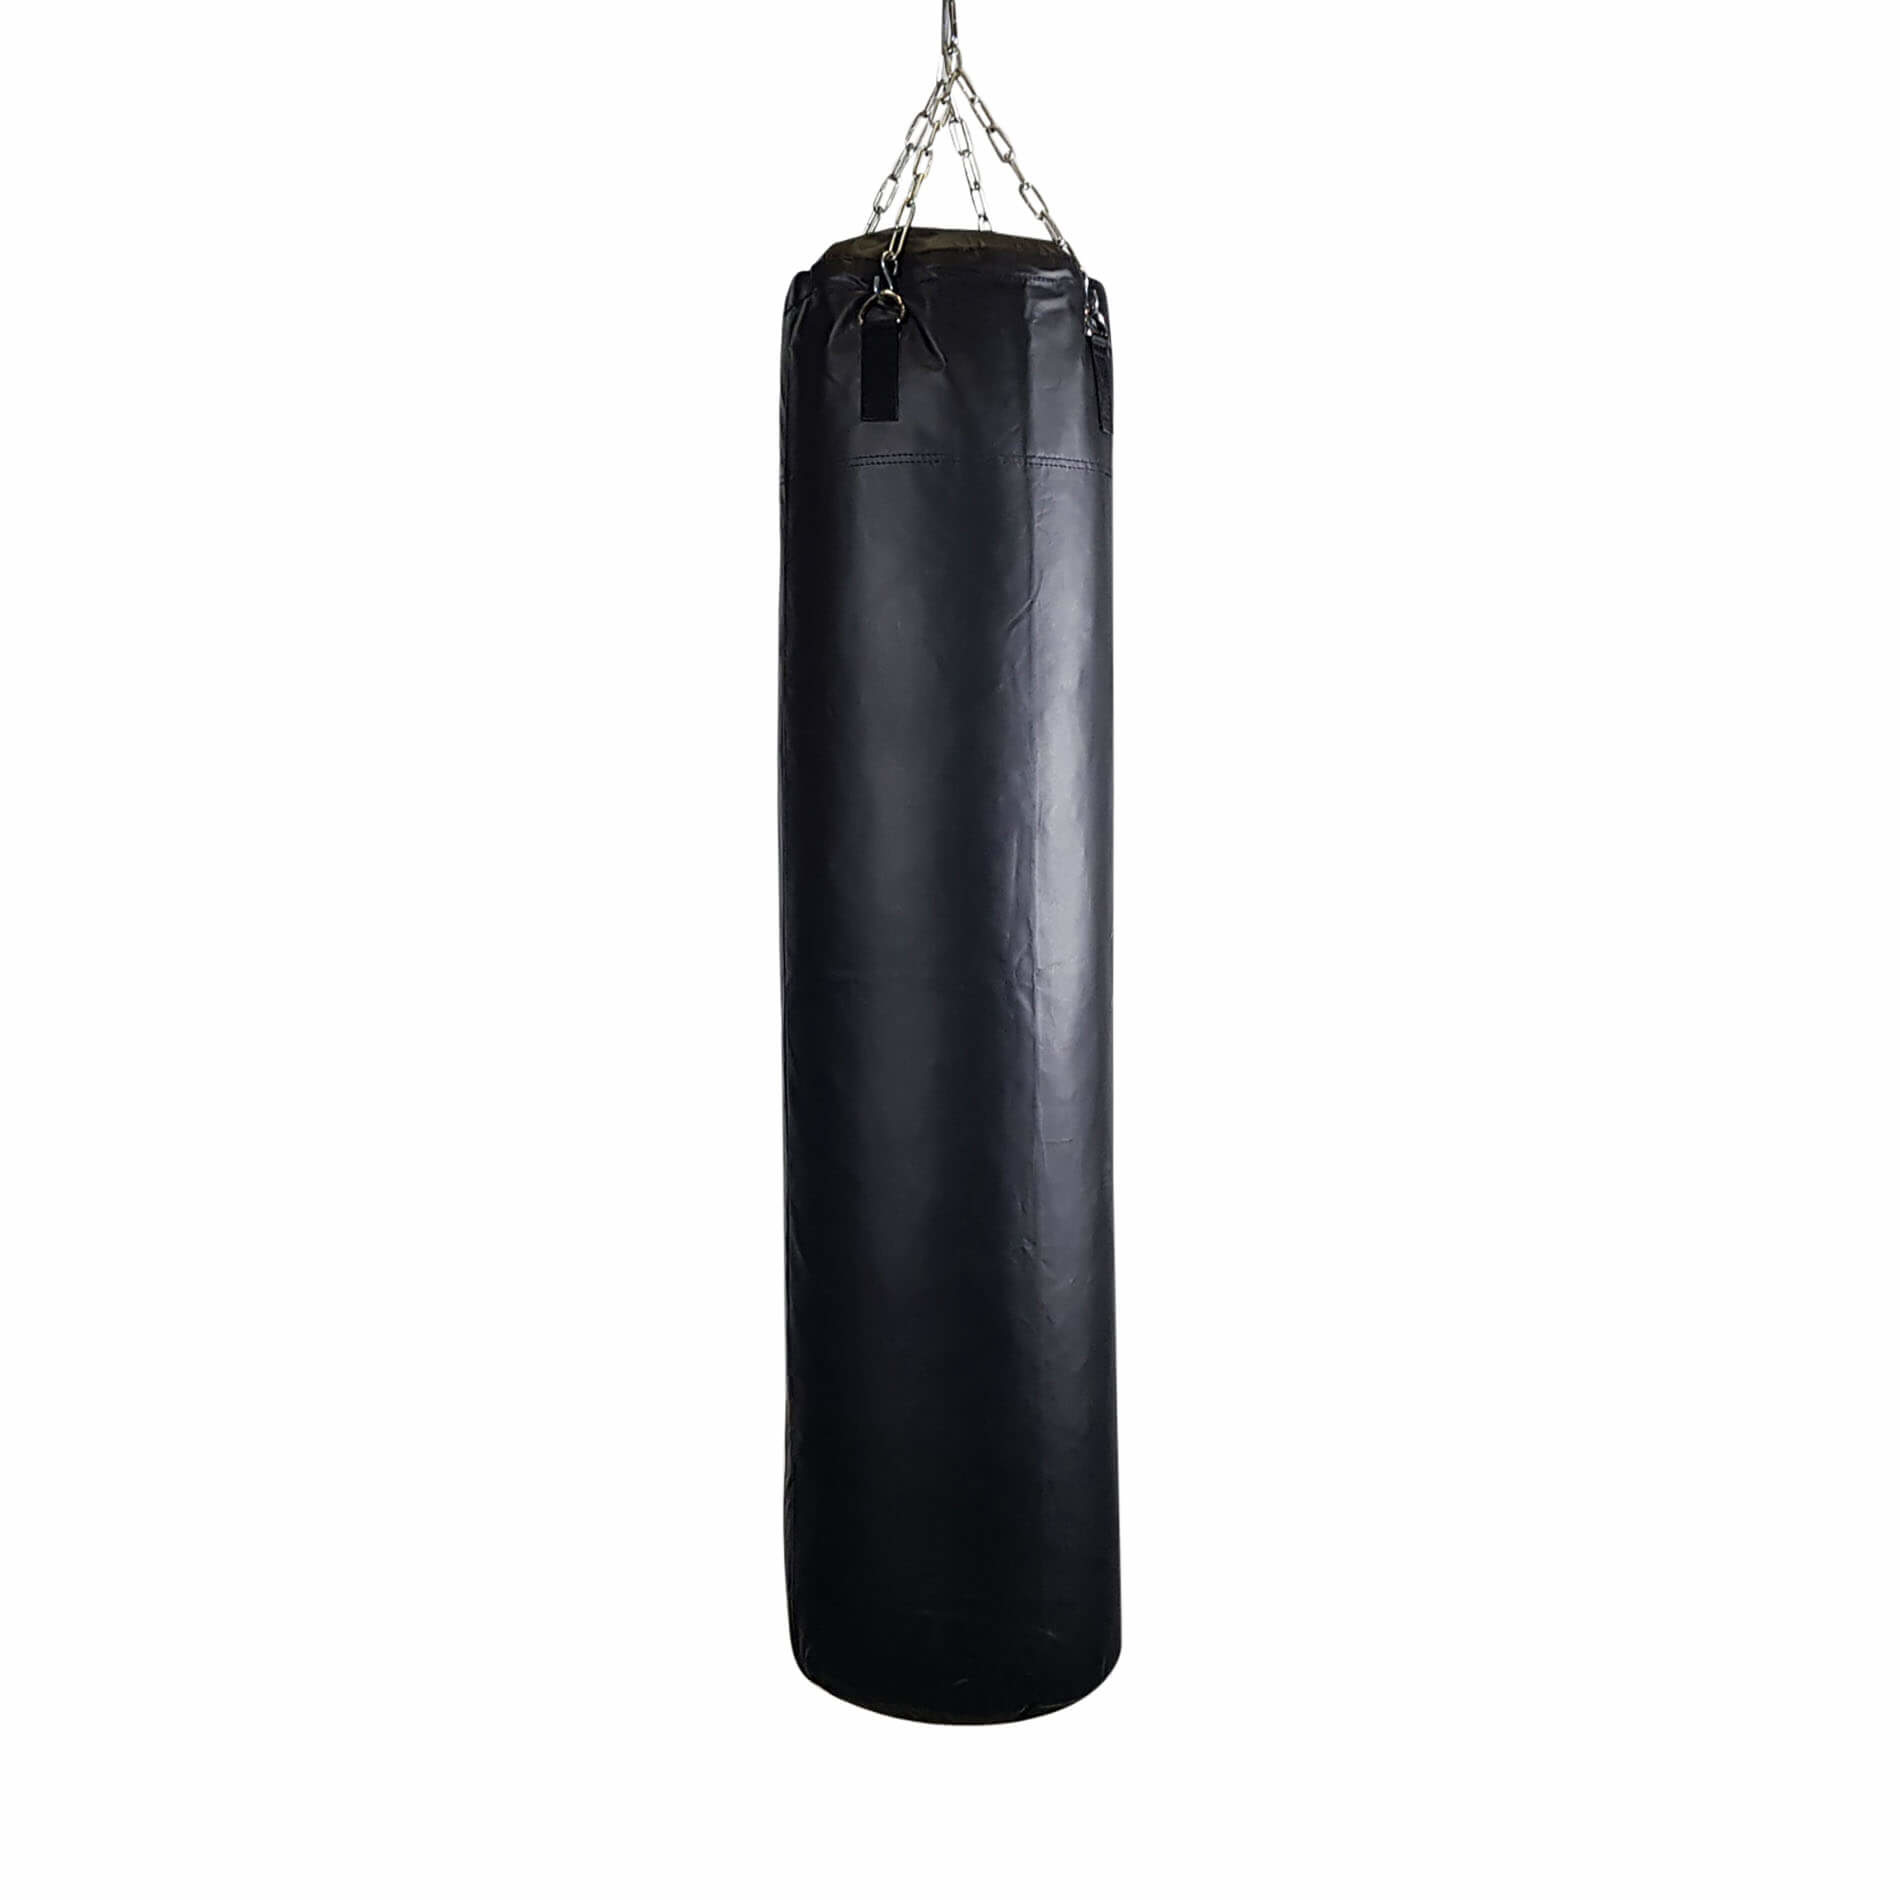 Boxing Bag Filled with Chain - Tunturi Fitness